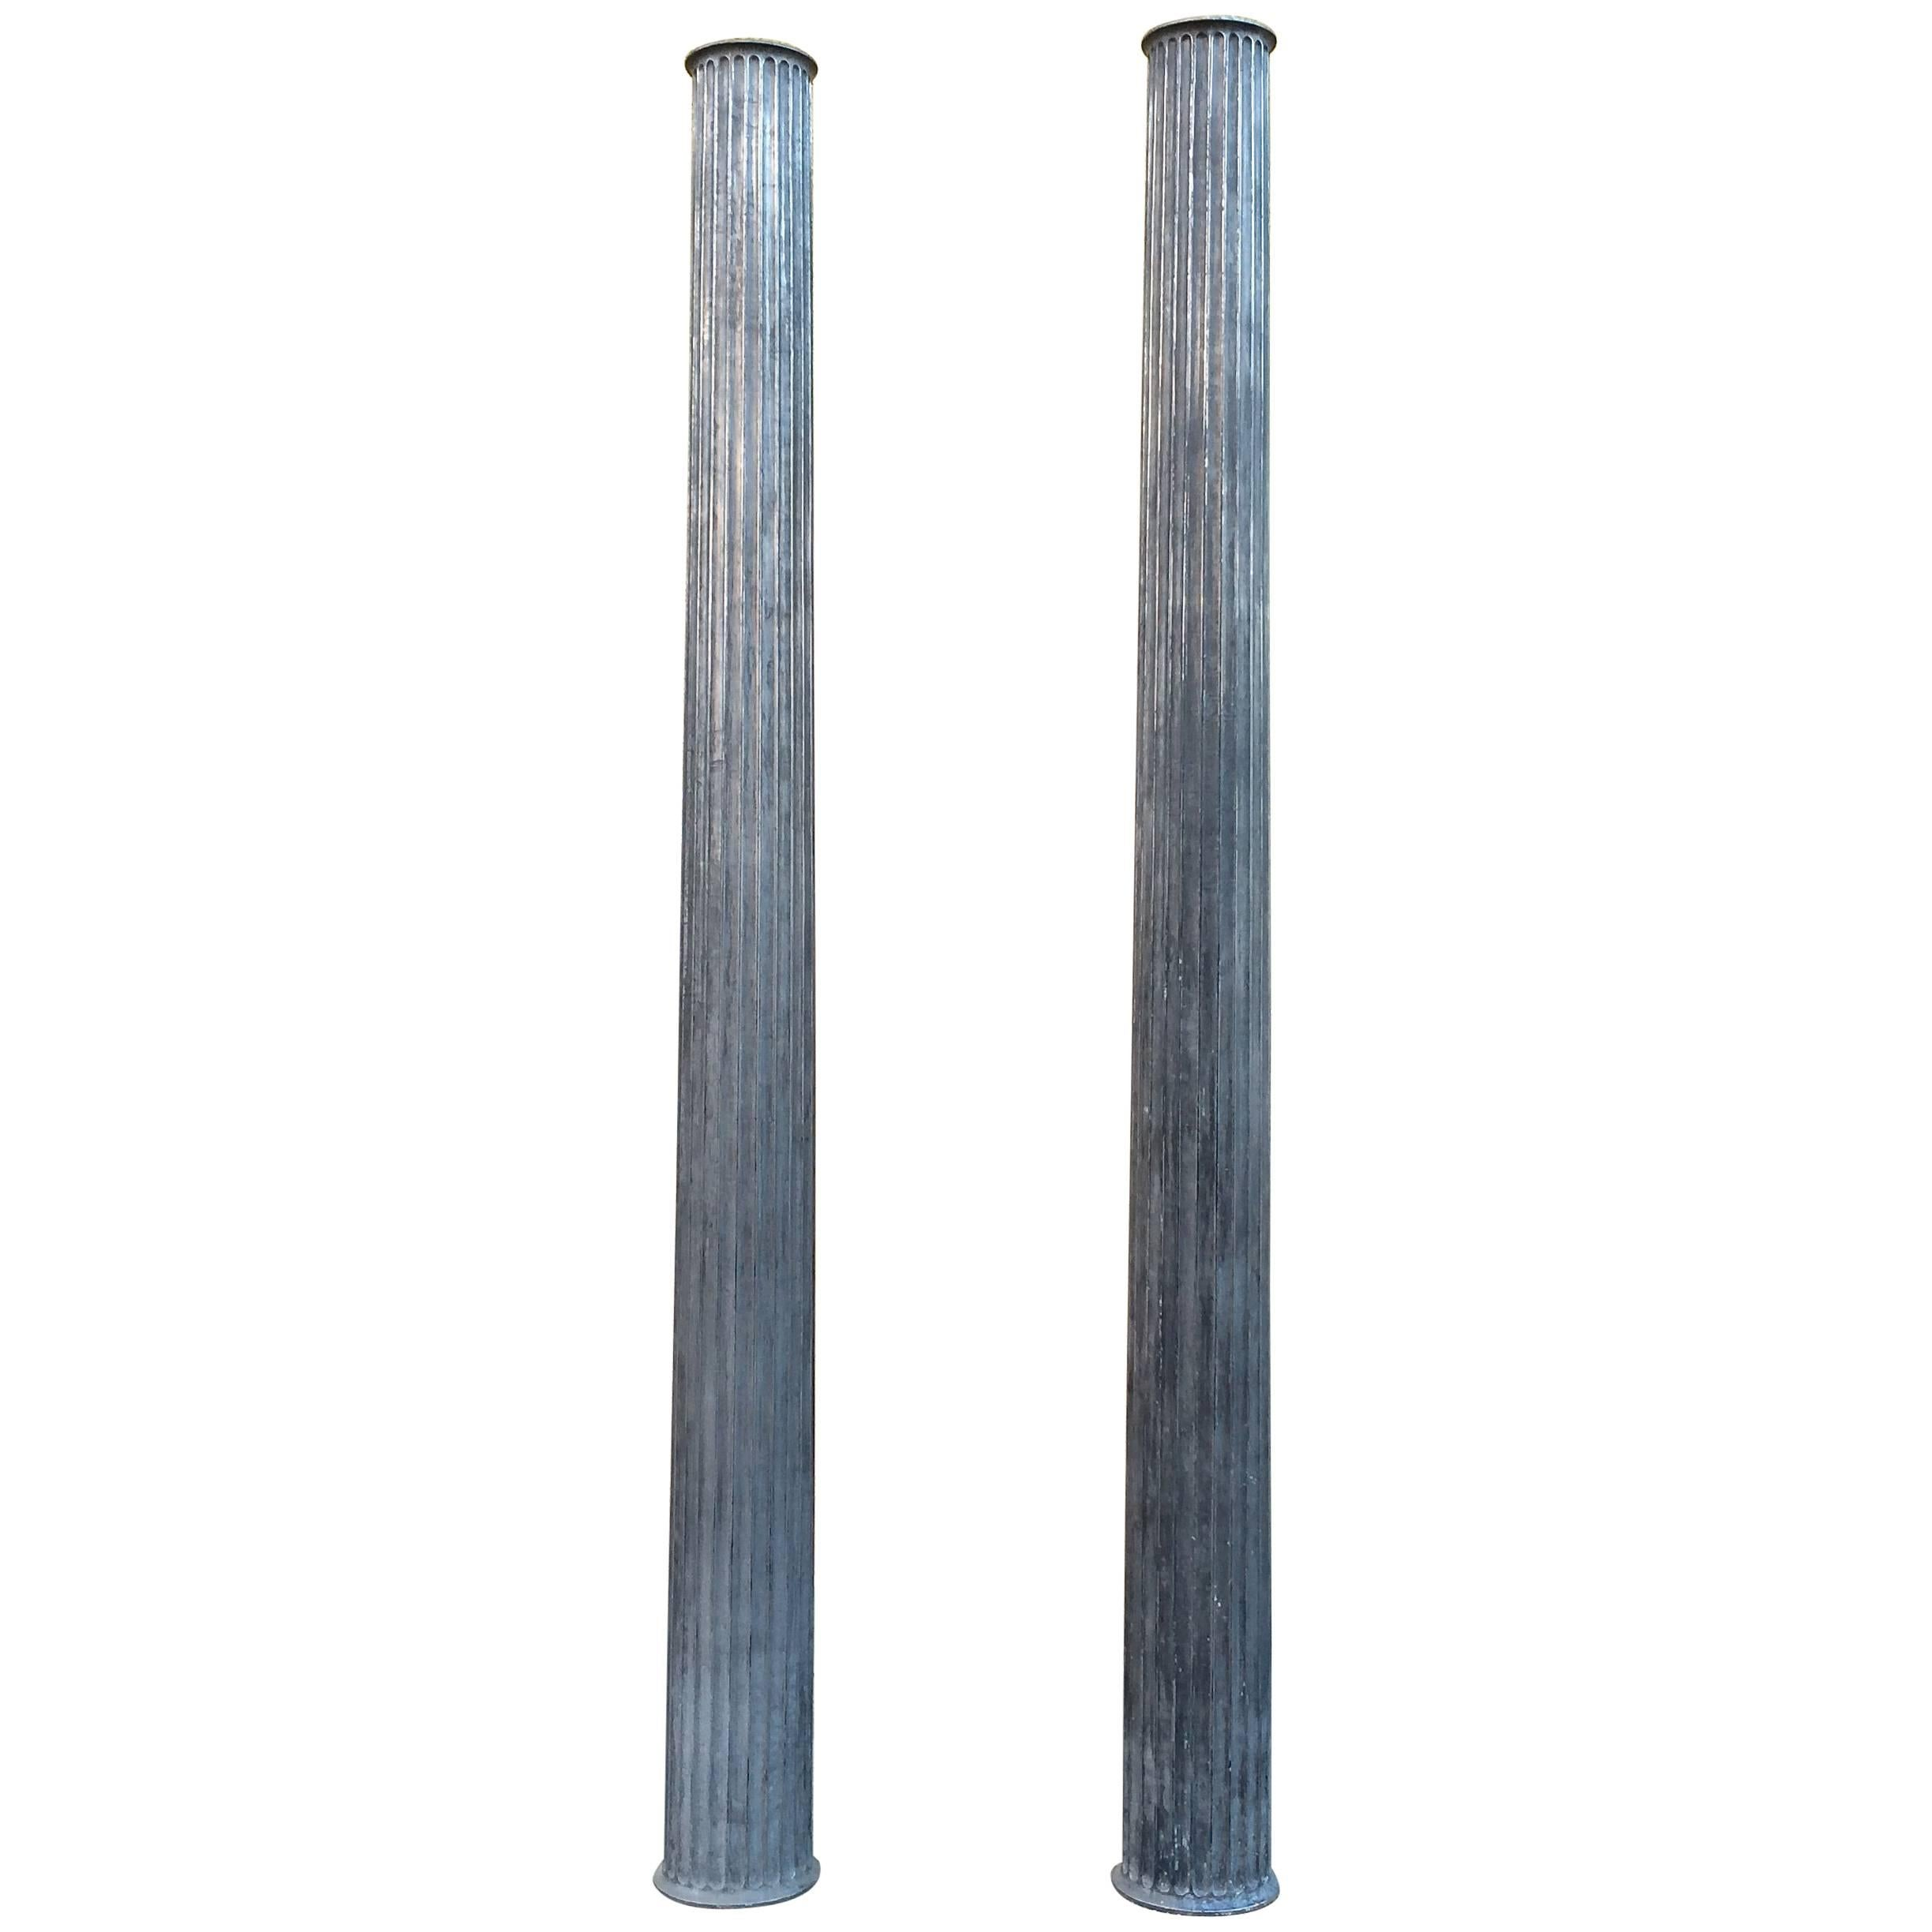 Pair of Architectural Gunmetal Steel Fluted Columns